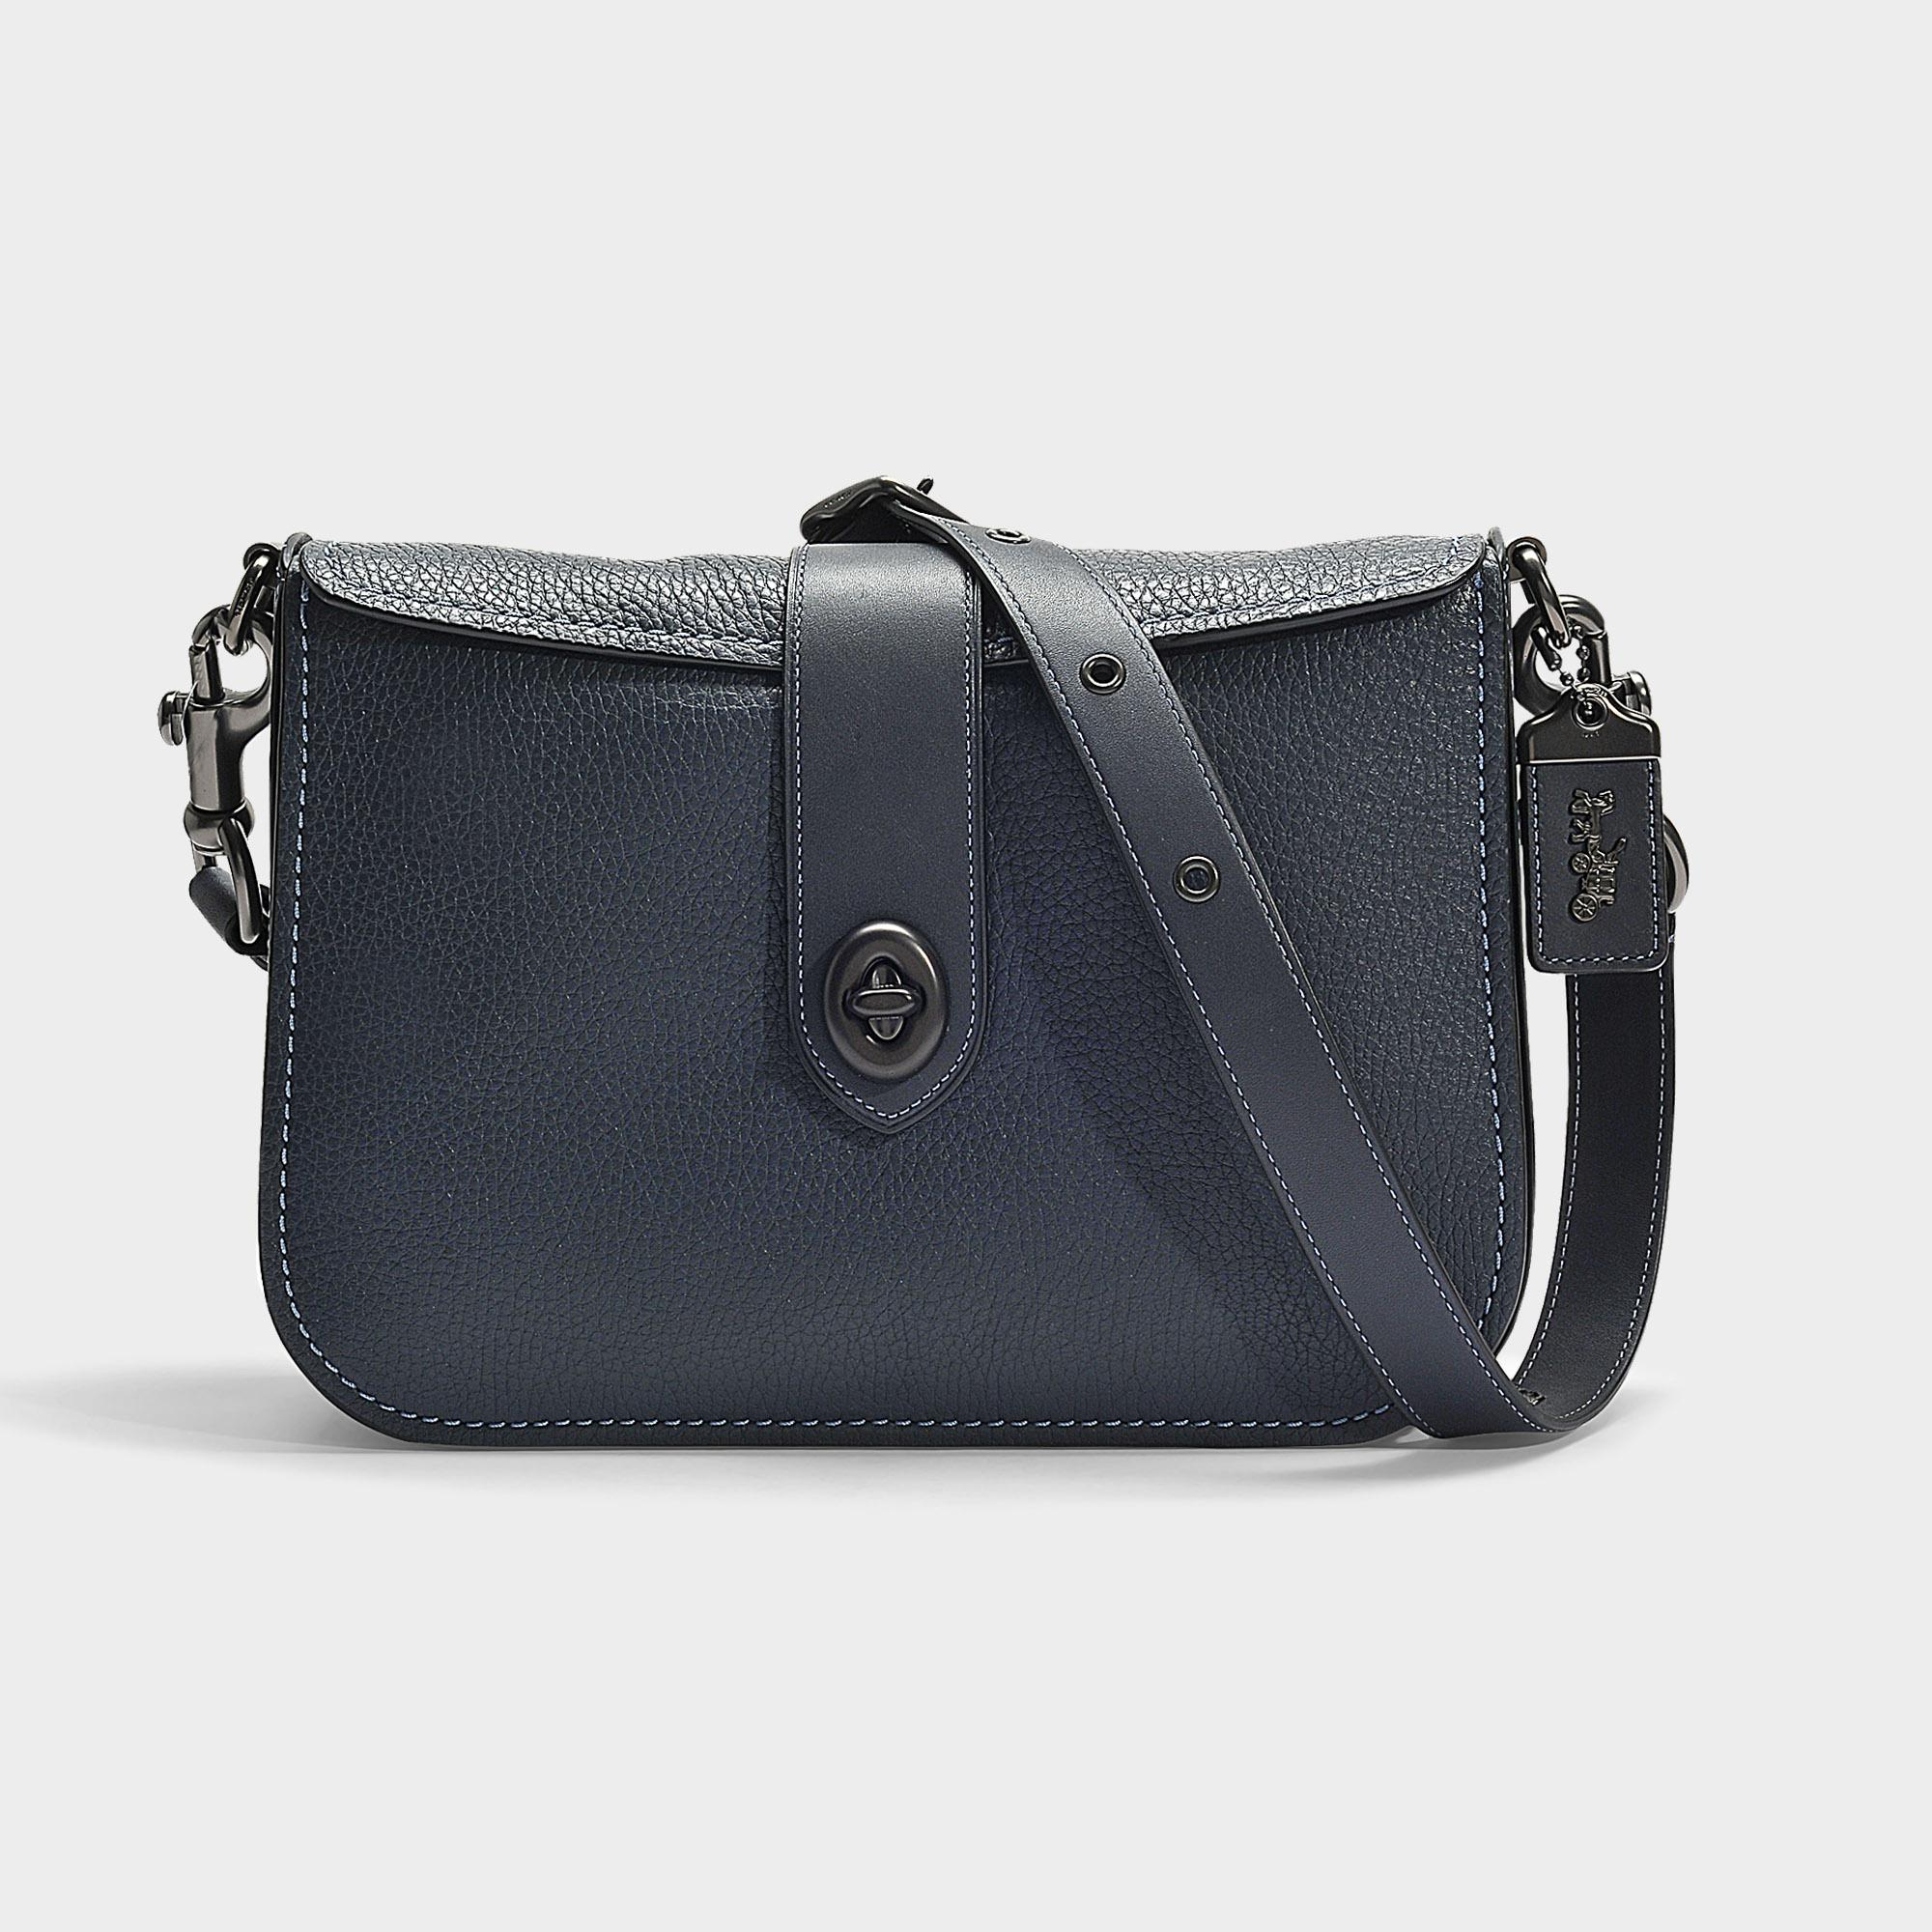 08f9d7cfe602 COACH Page 27 Crossbody Bag In Navy Blue Calfskin in Blue - Lyst